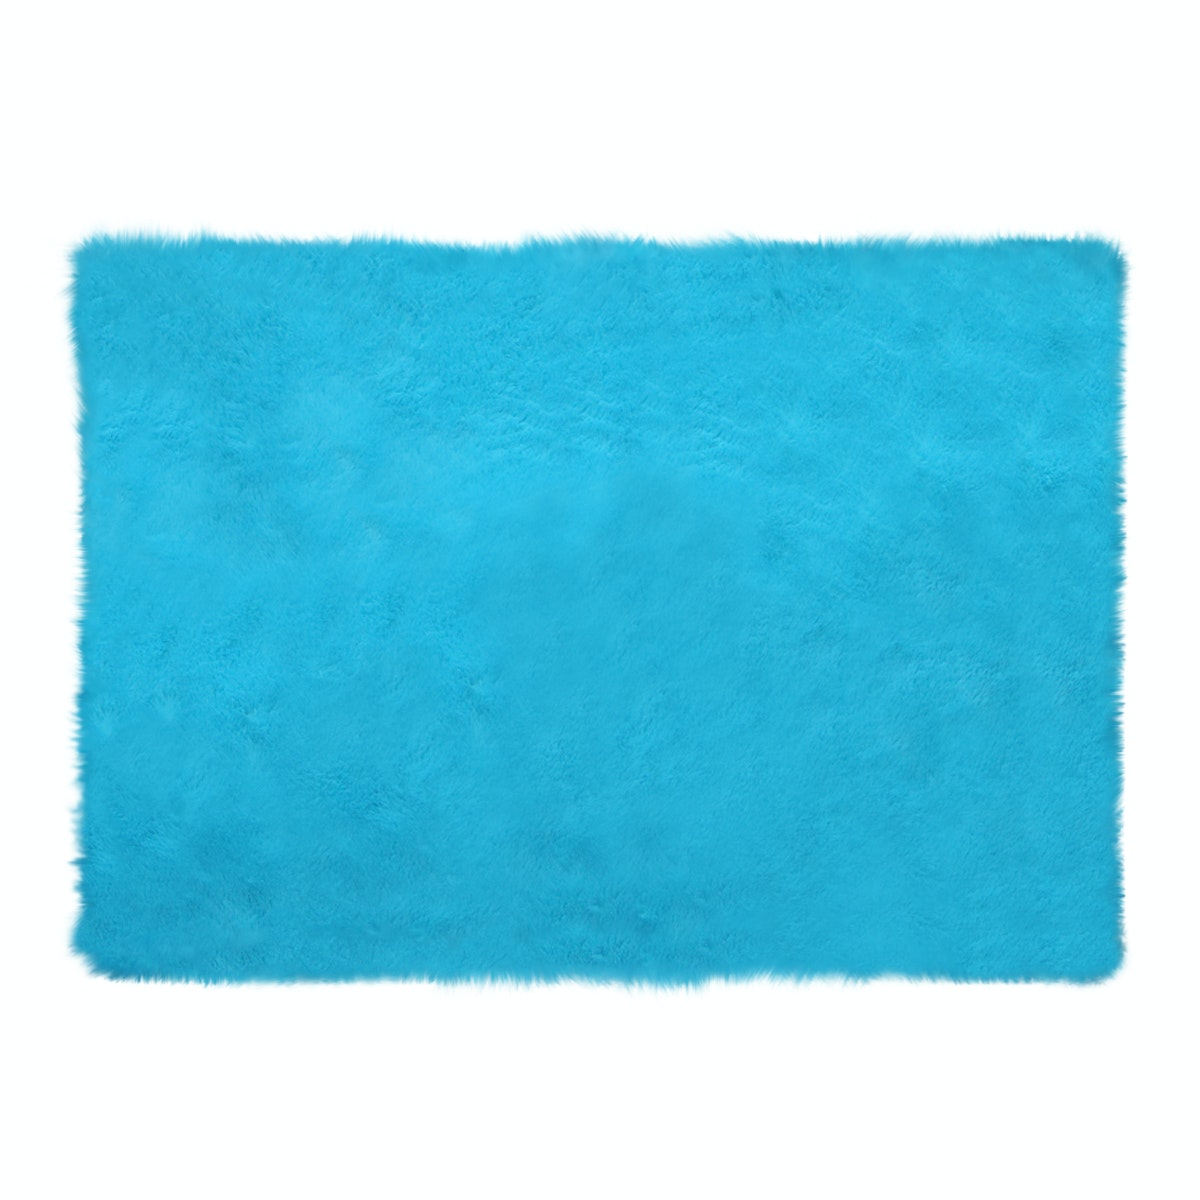 Glerry Home Decor Square Blue Mint Fur Rug 100x150cm